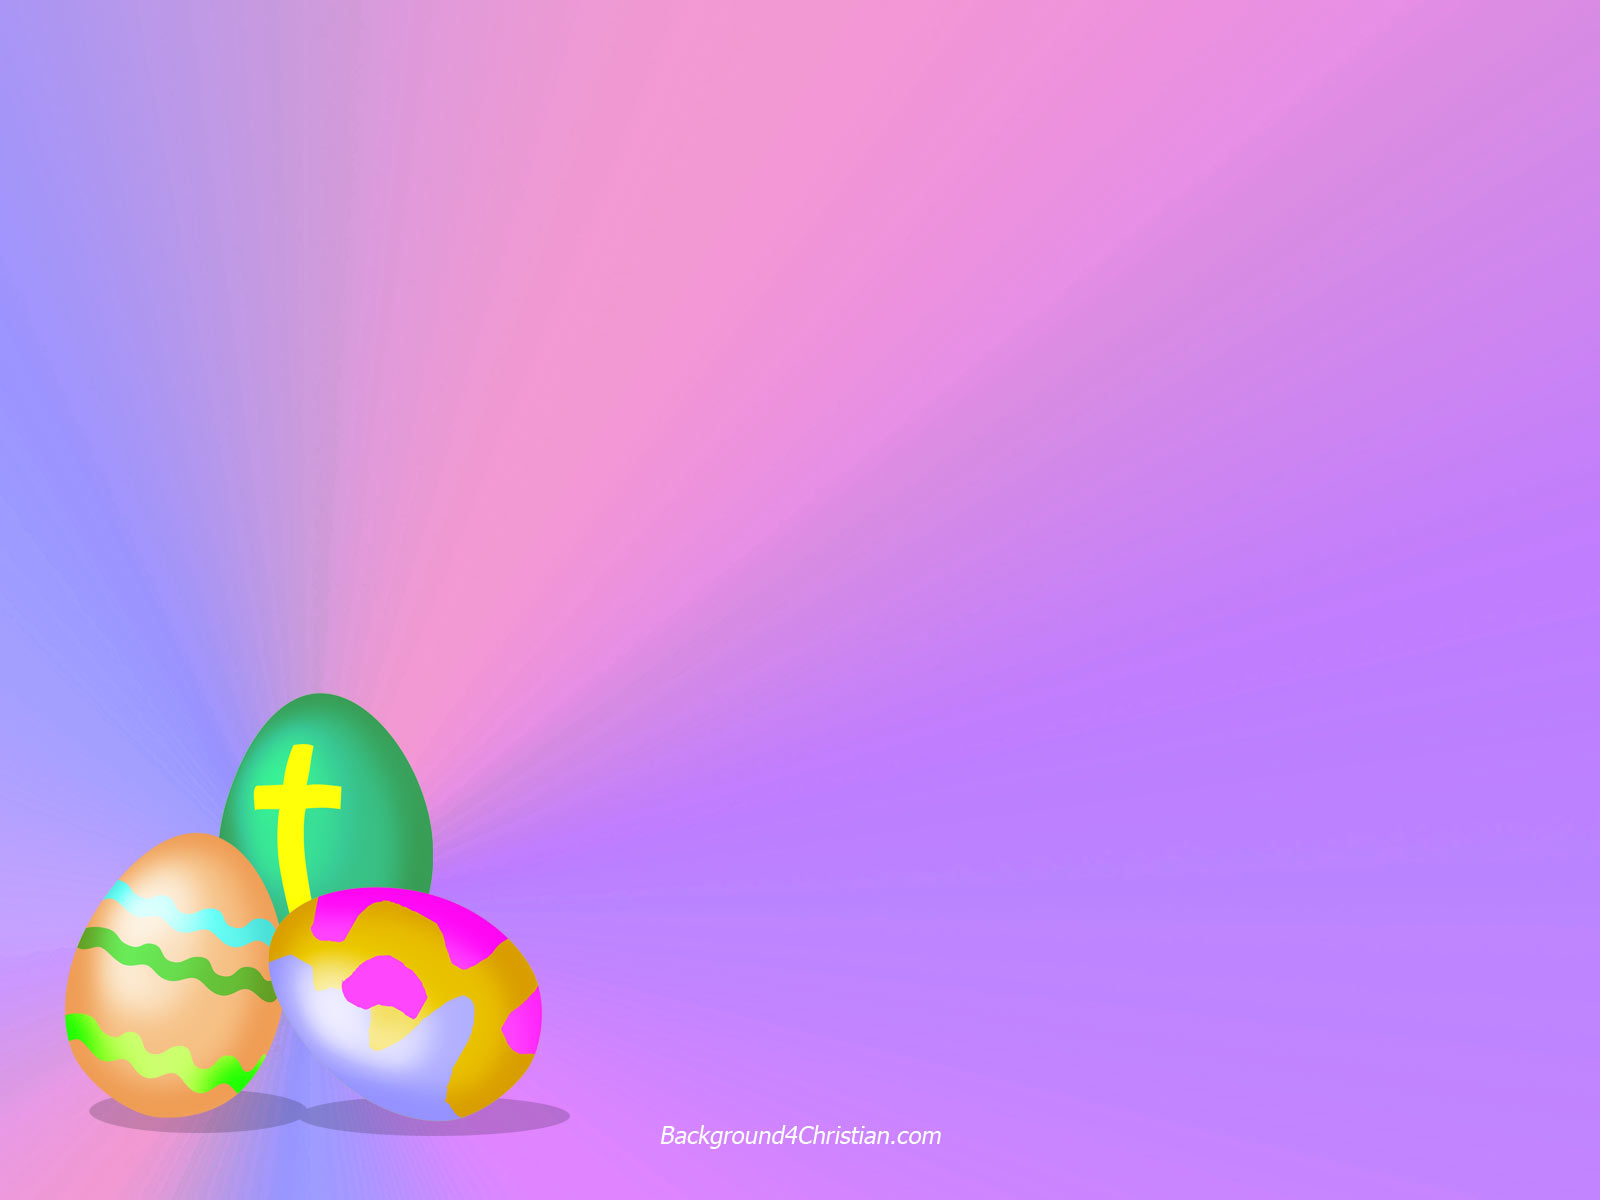 Free Religious Easter Border Clip Art free image.